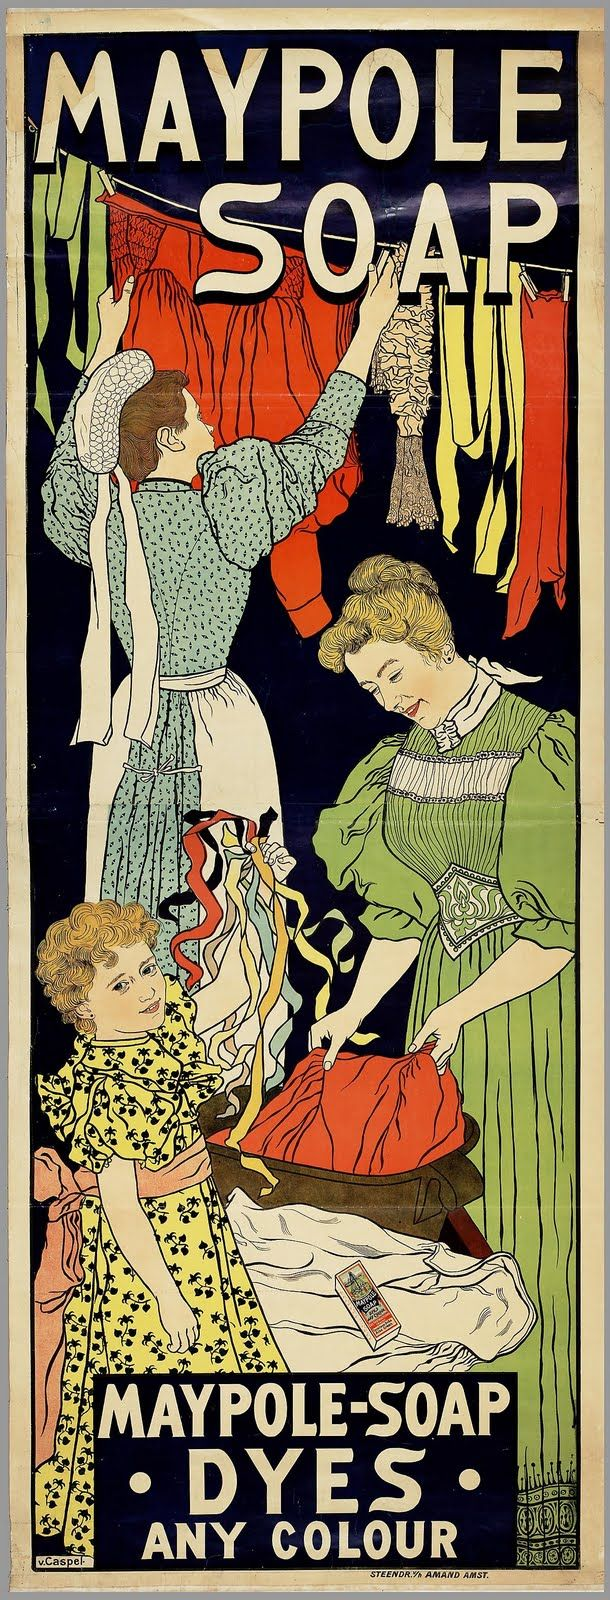 Vintage Ephemera: Maypole Soap advertisement - 1896 cute in the laundry room?